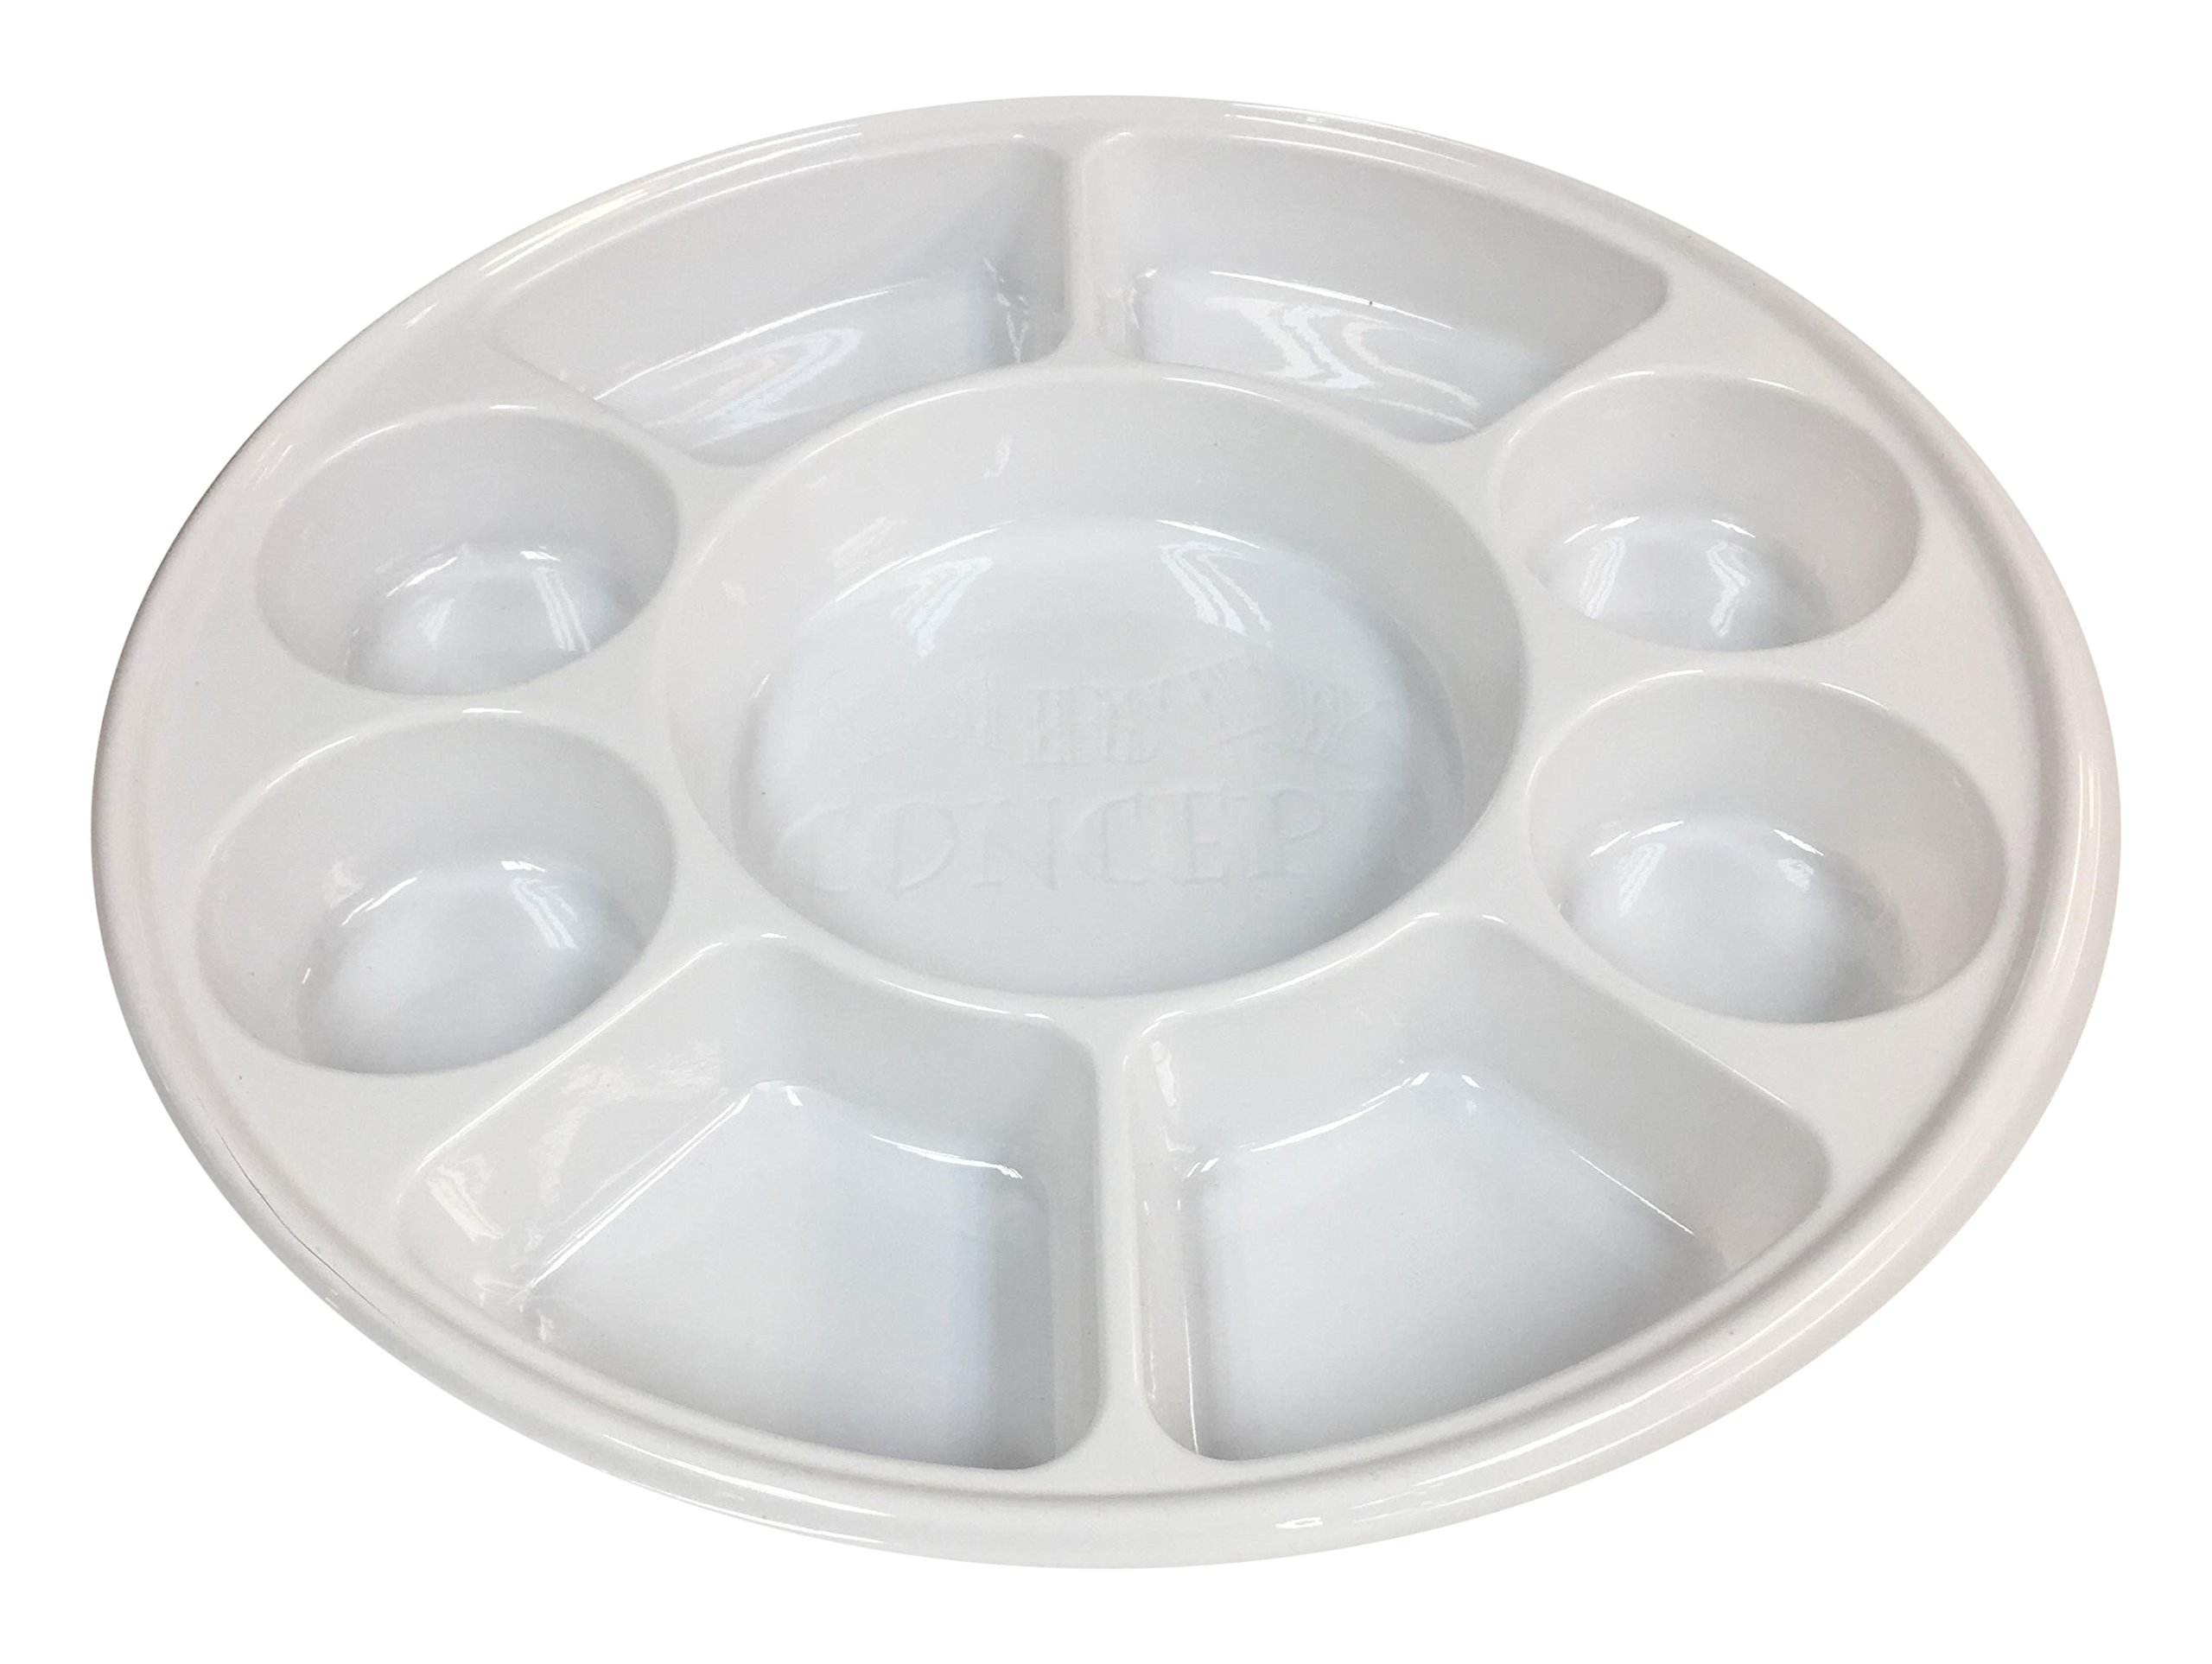 Movie Time Video 200 Piece Party Tray/Thali/Plates, Disposable 9 Compartments Round